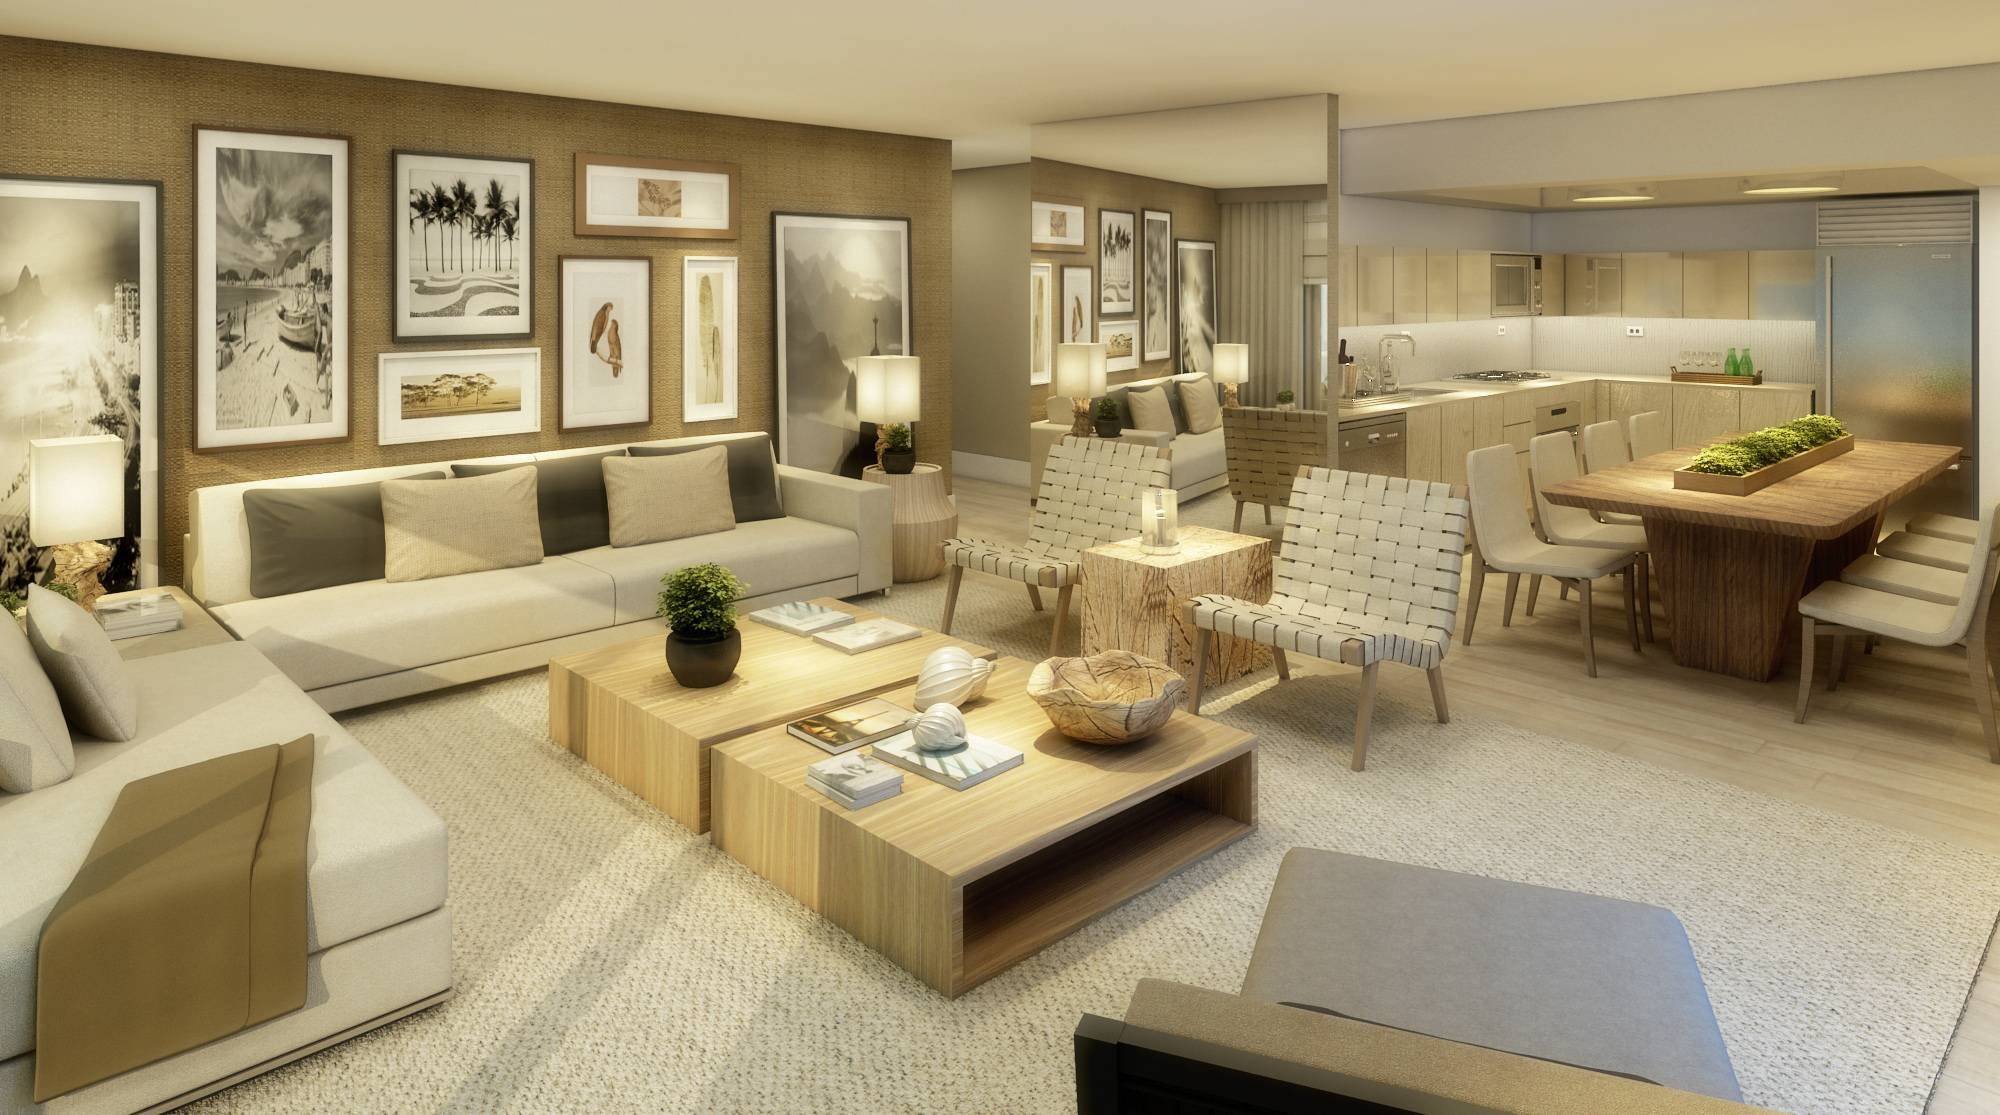 1 Hotel & Homes South Beach Residential Living Room